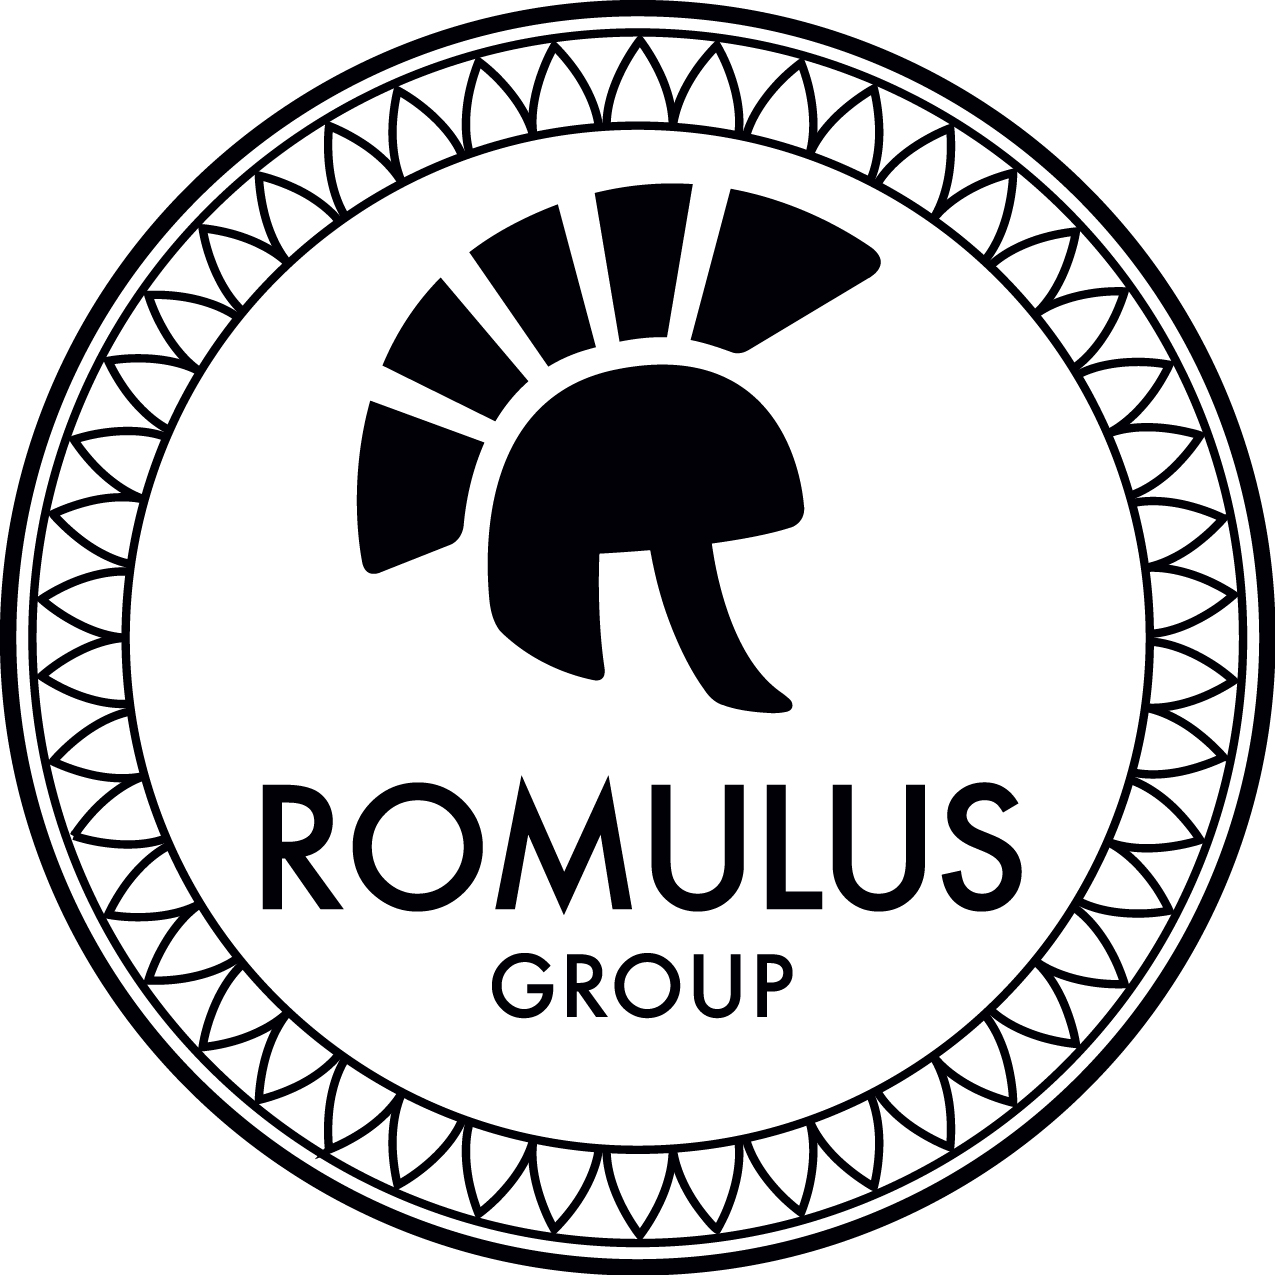 ROMULUS FOUNDATION